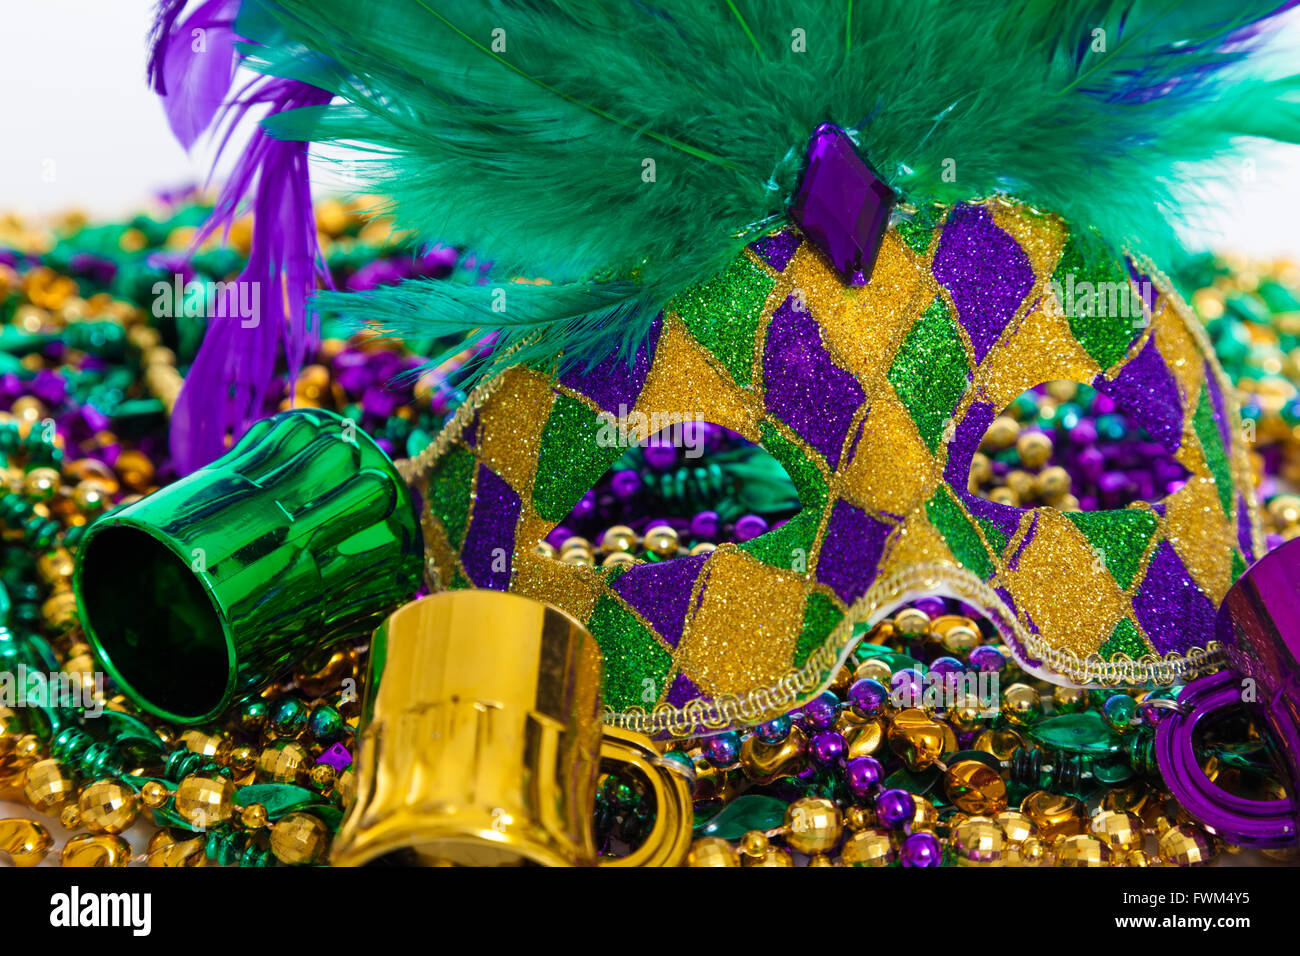 mardi colorful gras to make carnival pinterest on diy using beads party images easy best masks and punchbowl